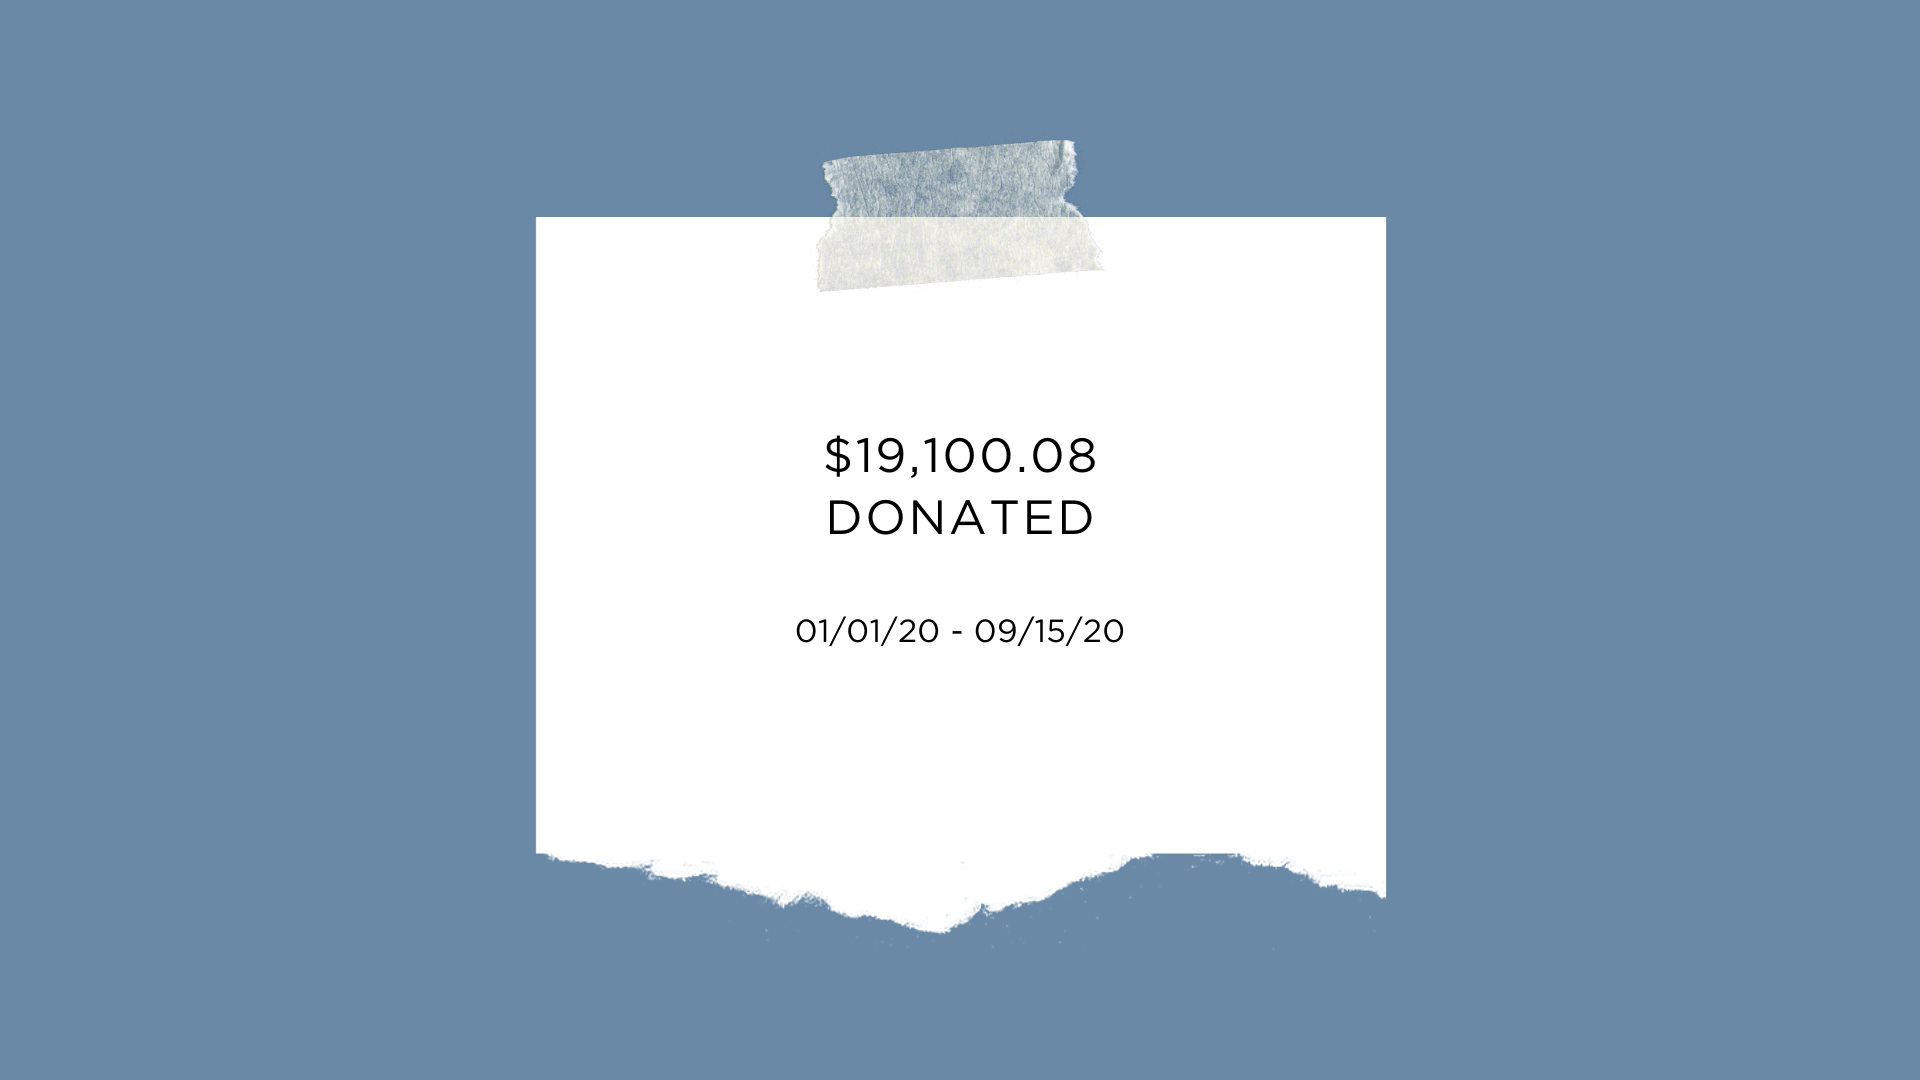 Slow North's donations